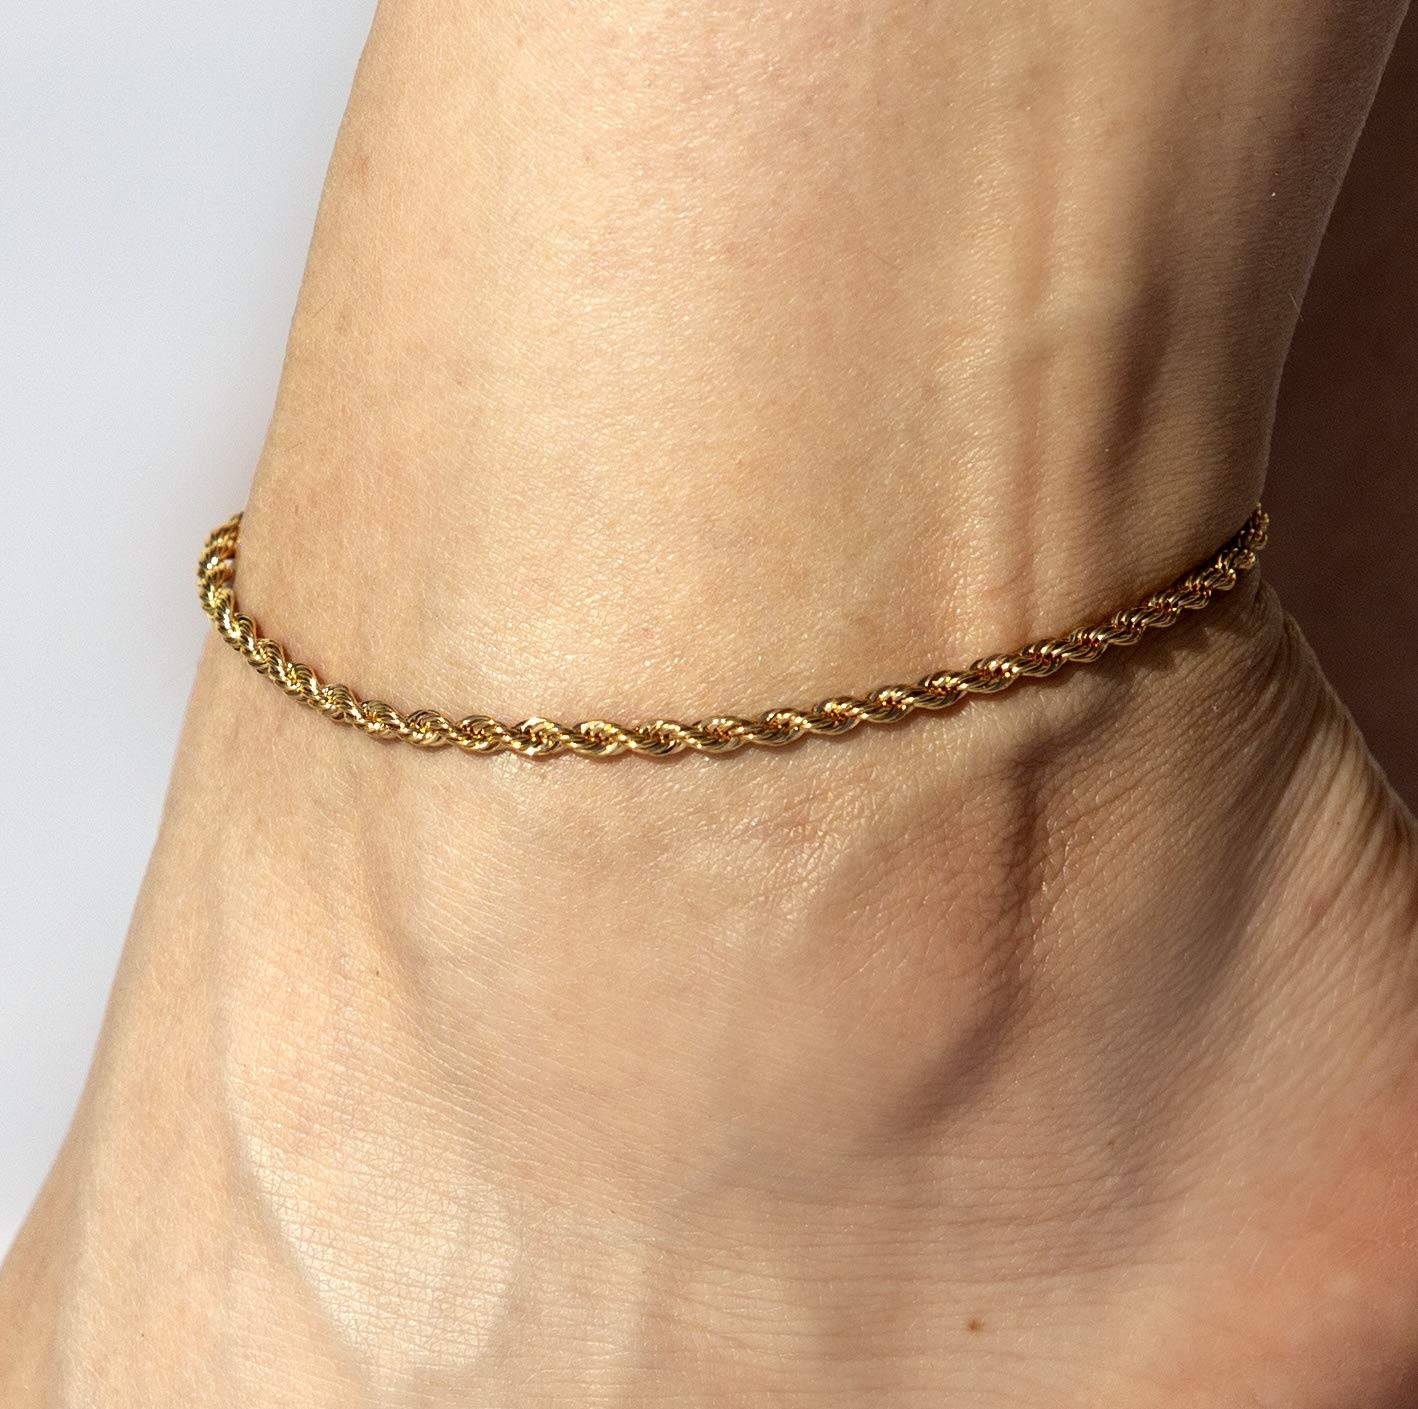 Lifetime Jewelry Ankle Bracelets for Women Men and Teen Girls - 3mm Rope Chain Anklet - Up to 20X More Real 24k Gold Plating Than Other Barefoot Chains (Gold-Plated-Bronze, 9.0) by Lifetime Jewelry (Image #6)